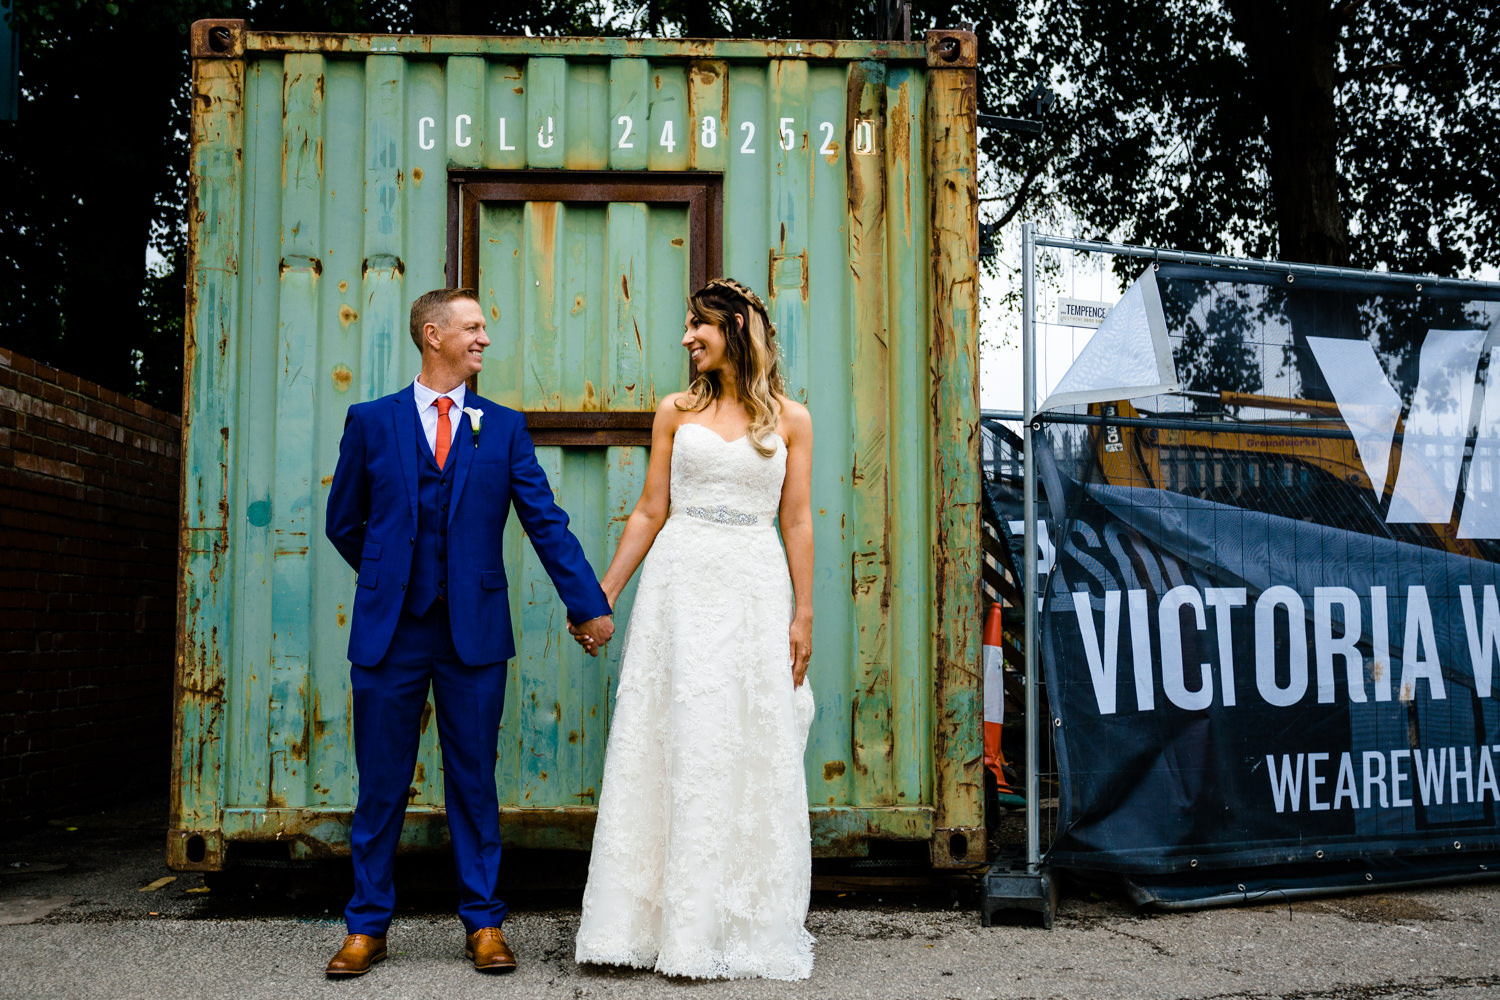 A bride and groom holding hands at Victoria Warehouse wedding photograph